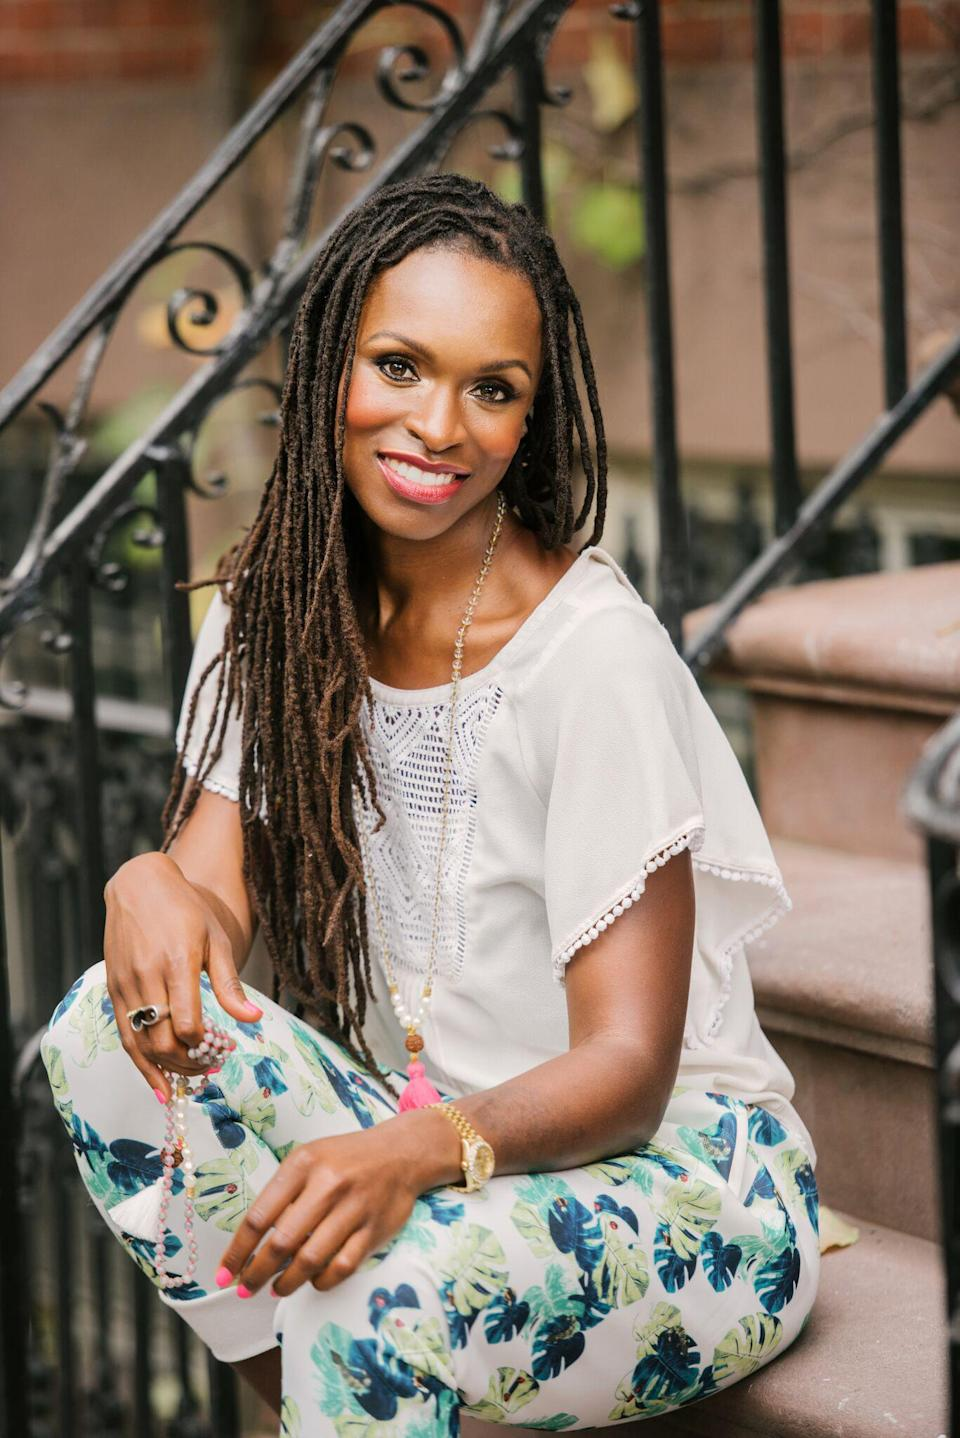 Latham Thomas is a celebrity wellness and lifestyle expert who is passionate about helping women embrace optimal health and spiritual growth. She also was named one of Oprah Winfrey's SuperSoul 100 and has a new book focusing on enriching your inner glow coming in September. (Photo: Latham Thomas)